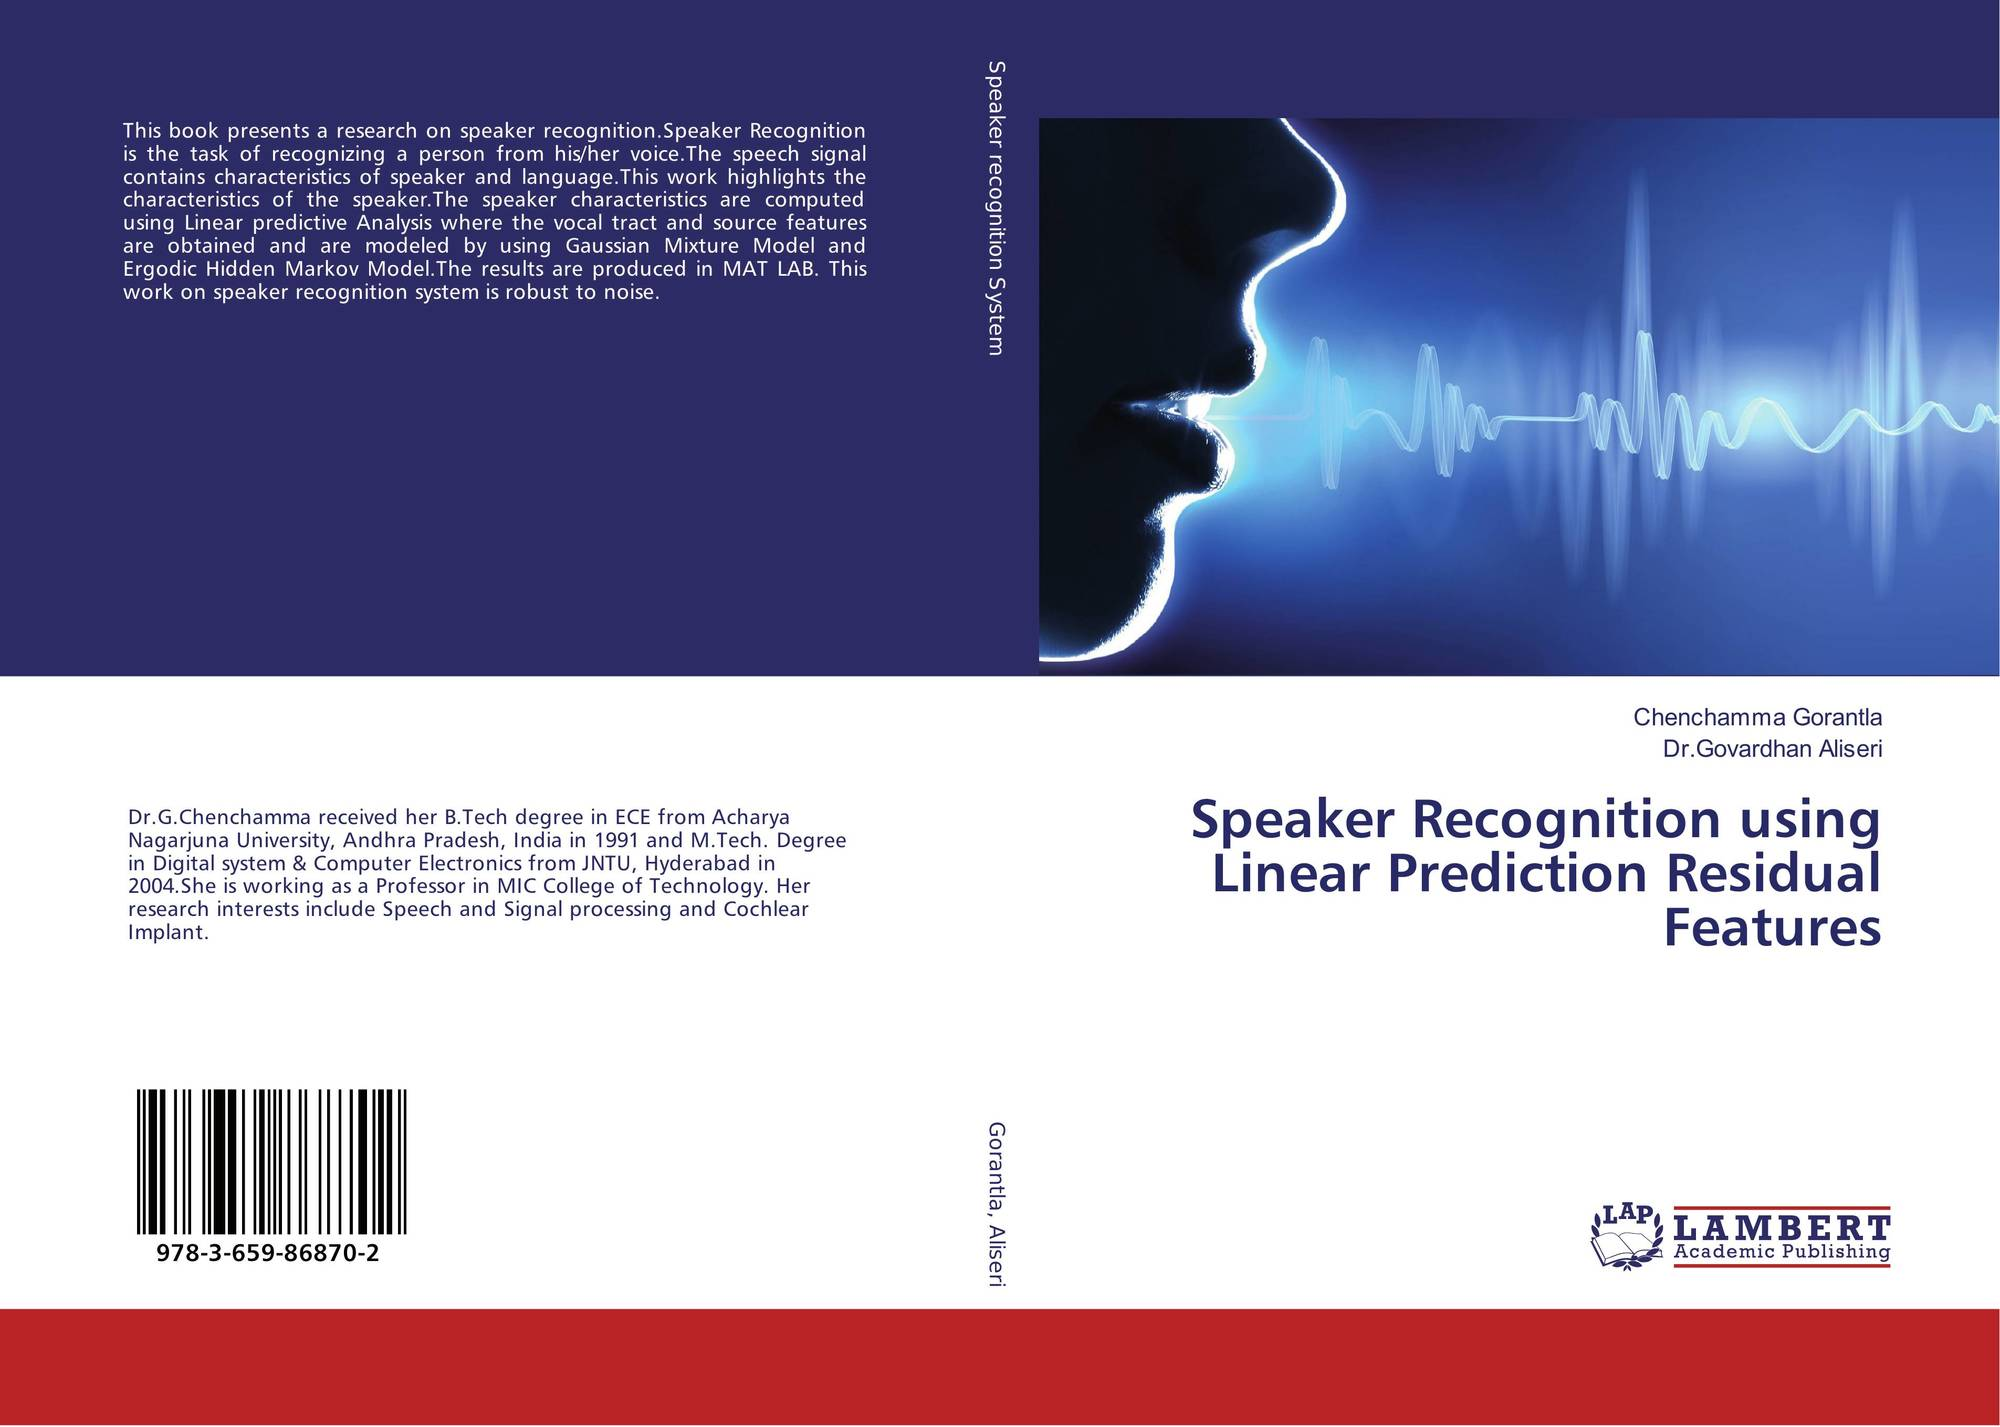 Speaker Recognition using Linear Prediction Residual Features, 978-3